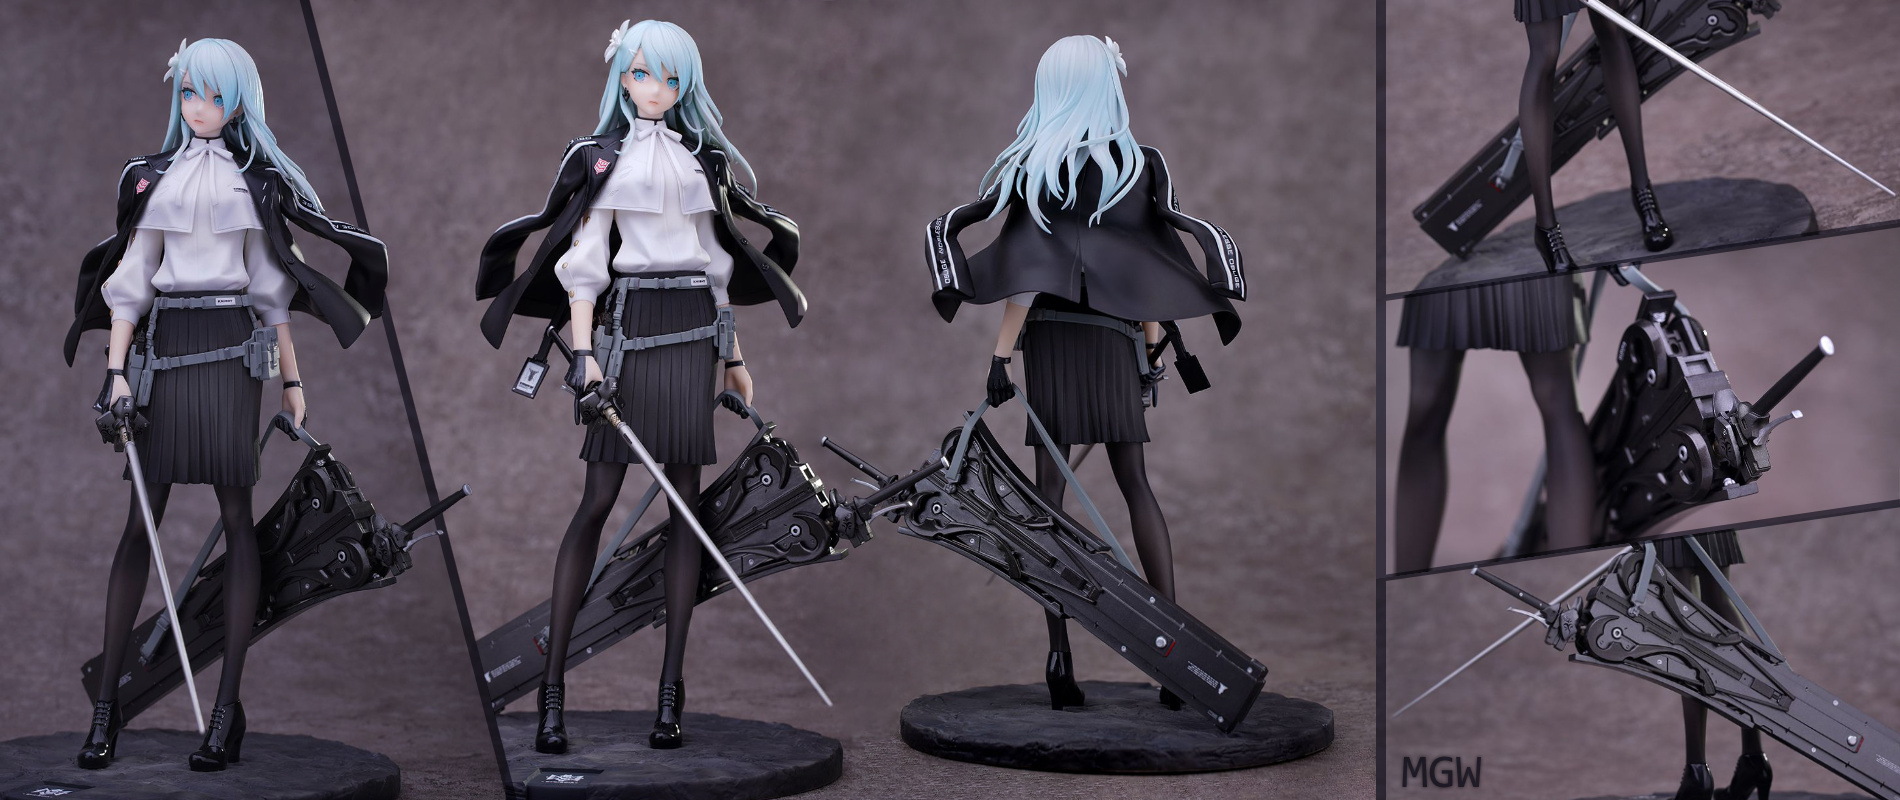 A-Z[S] by Myethos neco Series MGW Anime Figure Pre-order Guide